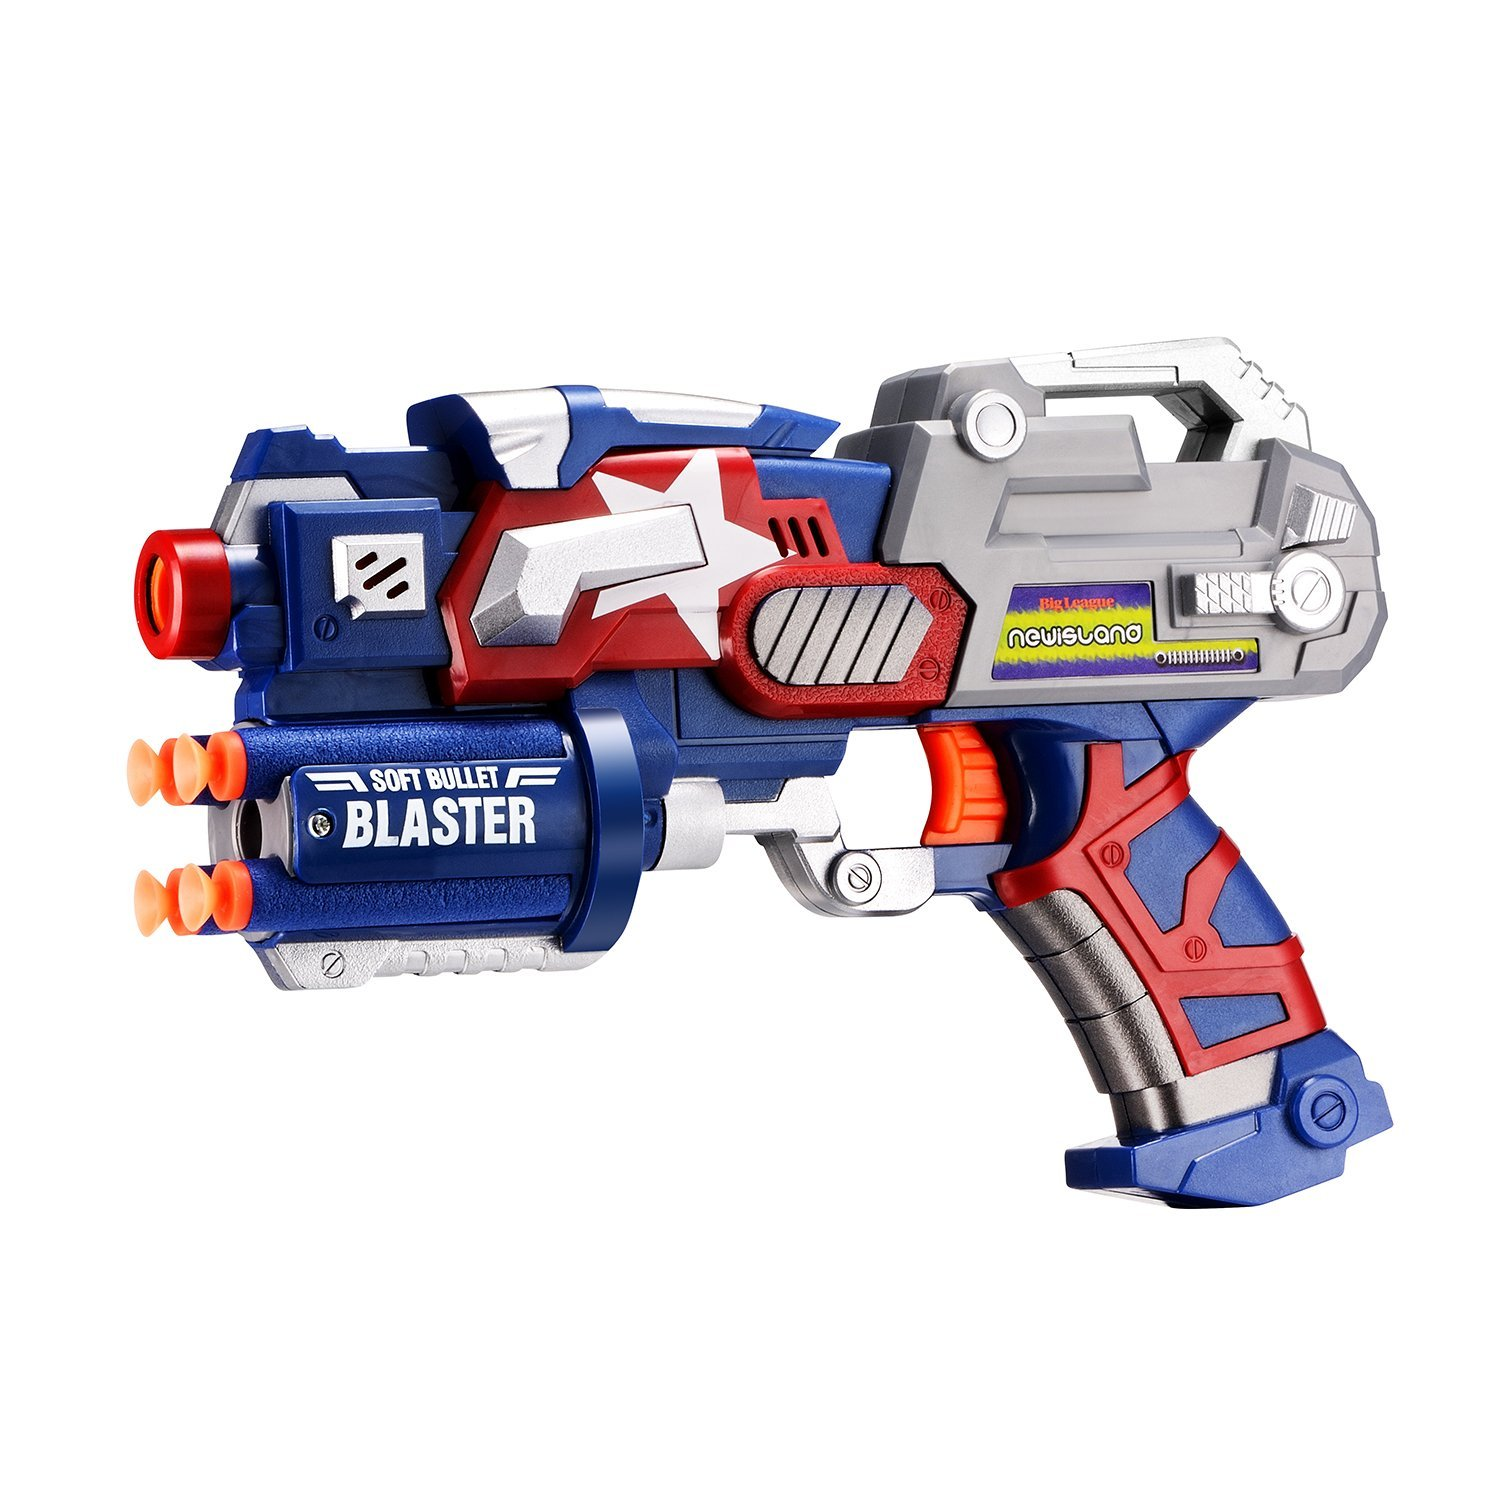 Soft bullet blaster gun in combination of gray, blue and white colors